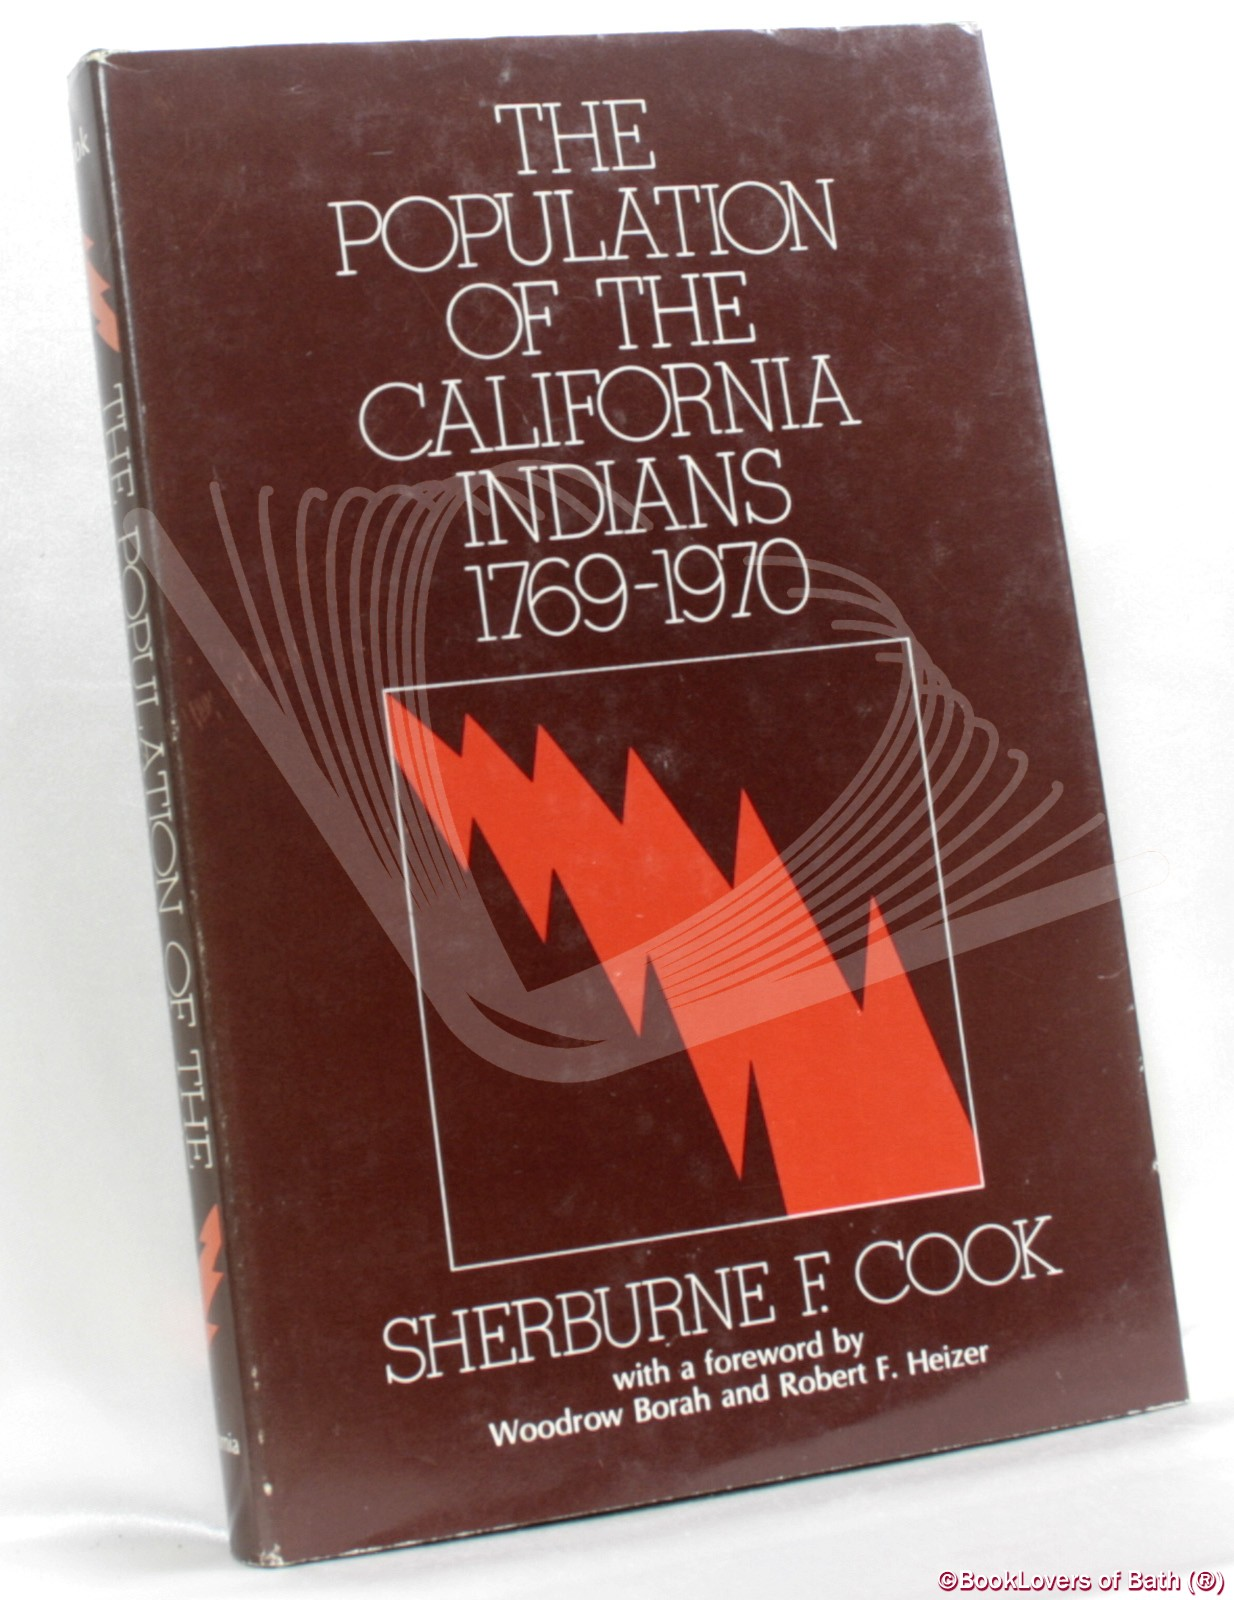 The Population of the California Indians 1769-1970 - Sherburne F. Cook